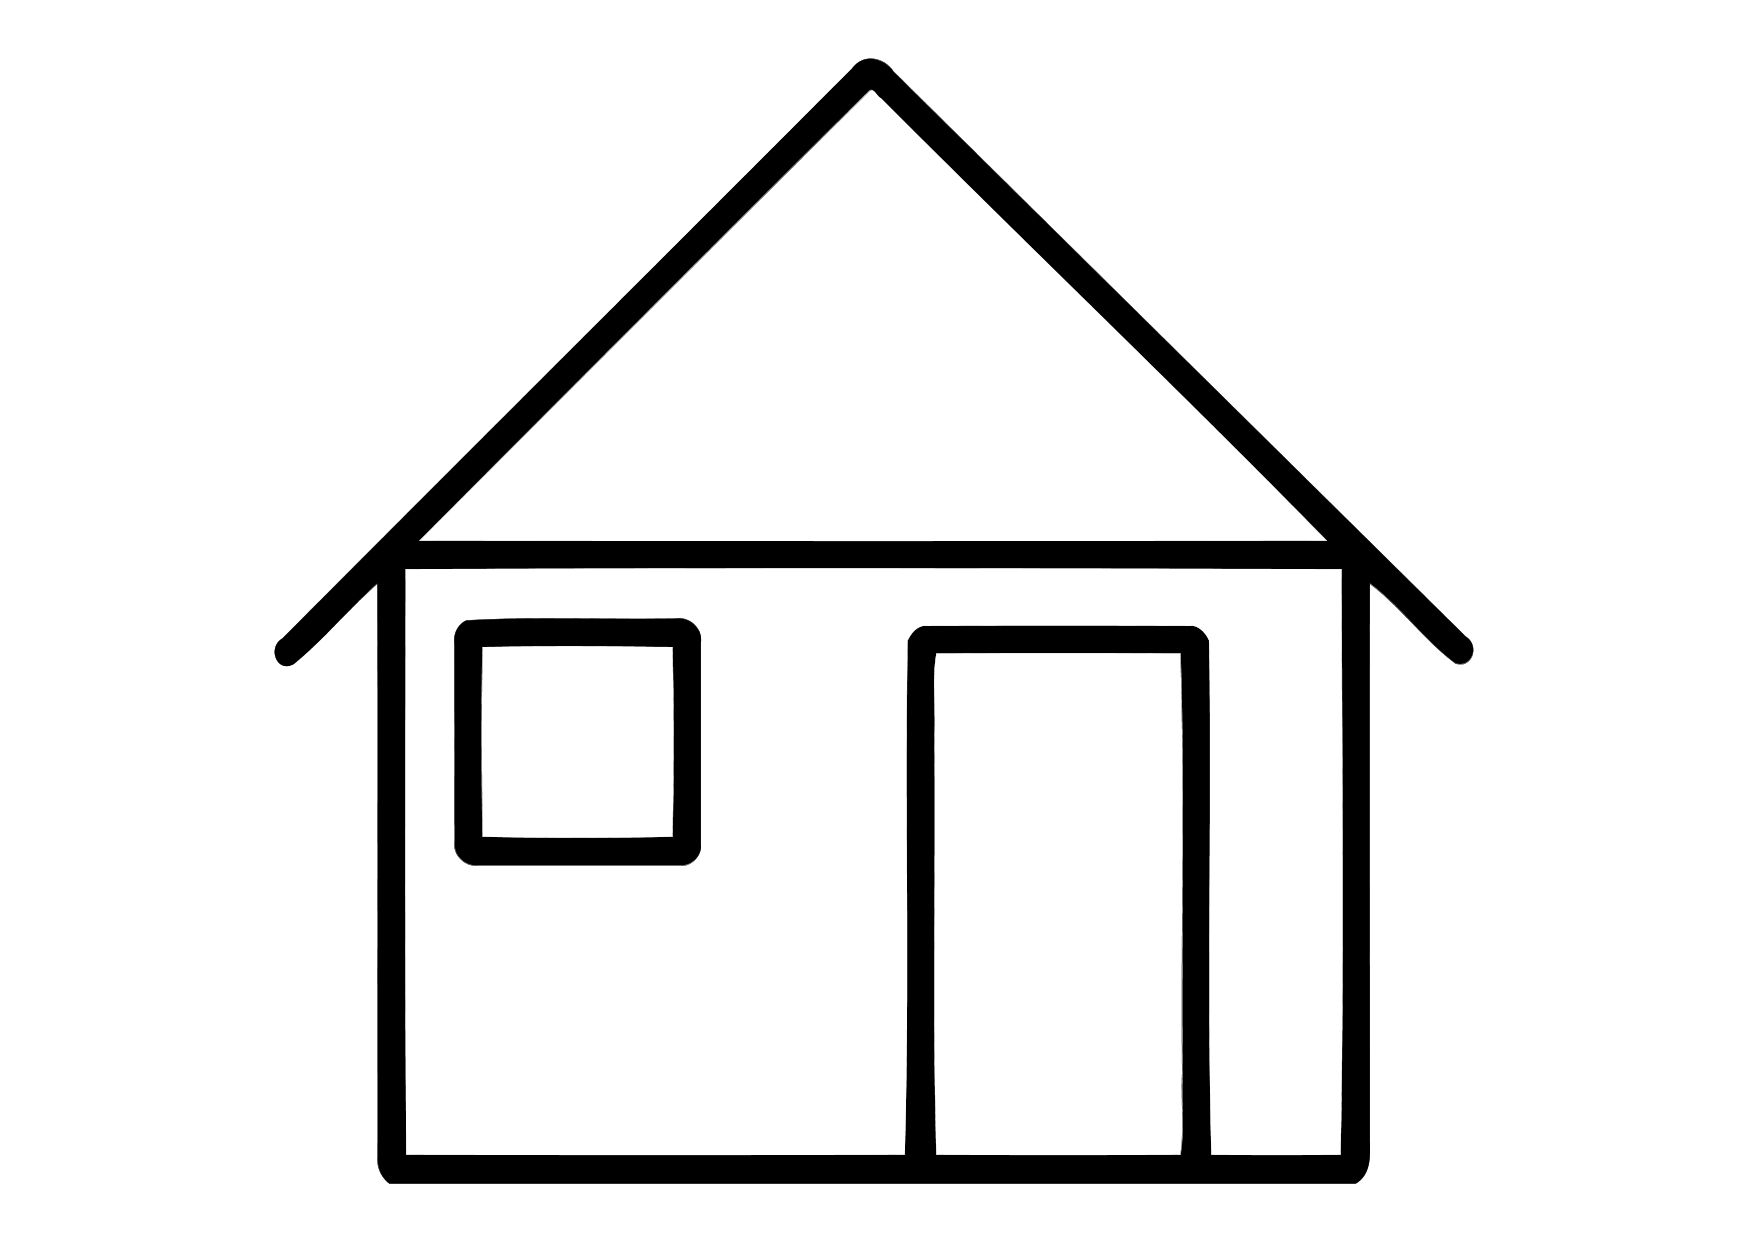 coloring pages of house free printable house coloring pages for kids pages coloring house of